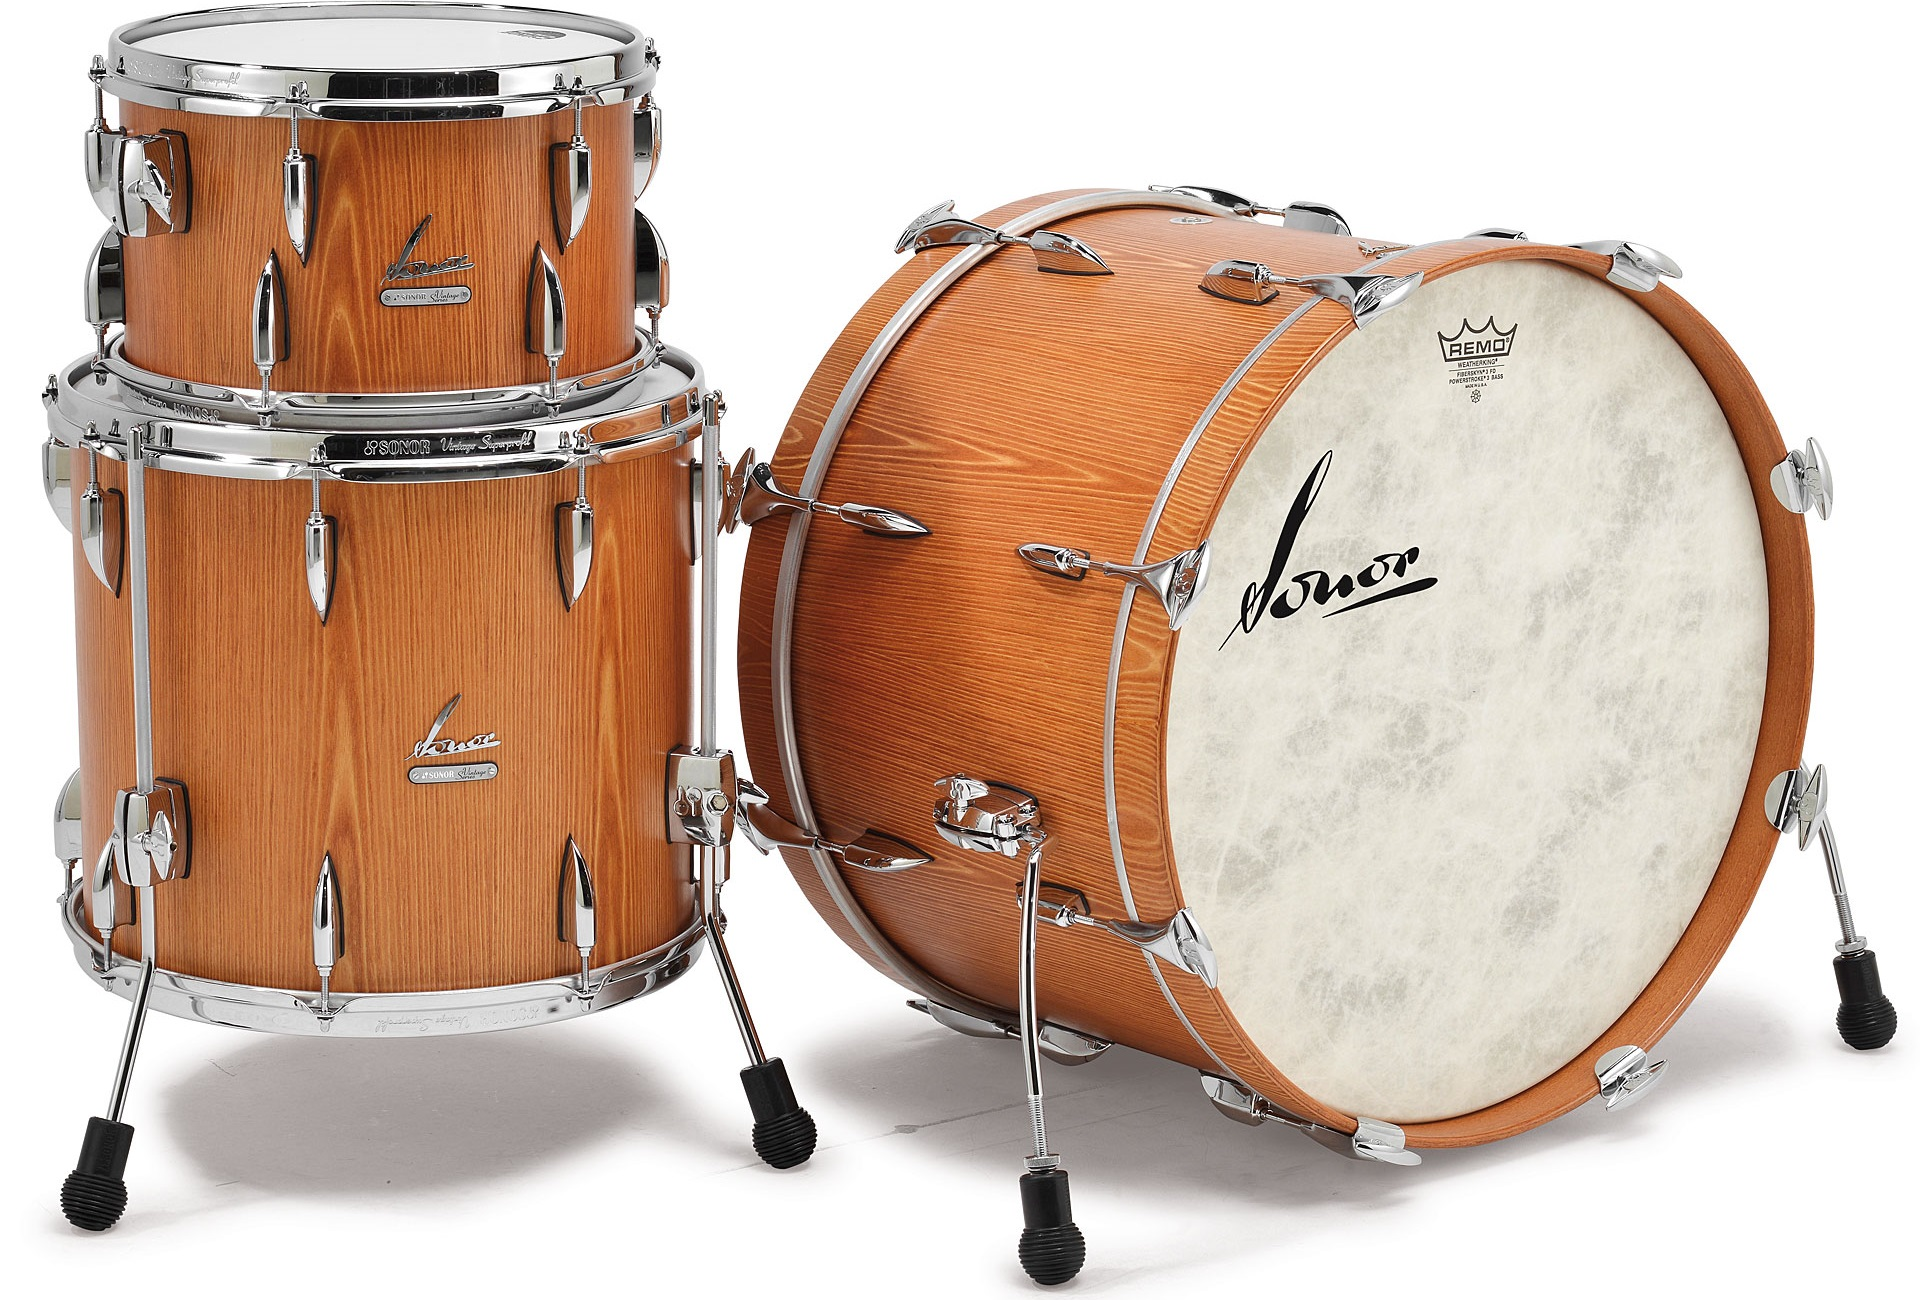 Sonor Vintage series set 1 Vintage natural